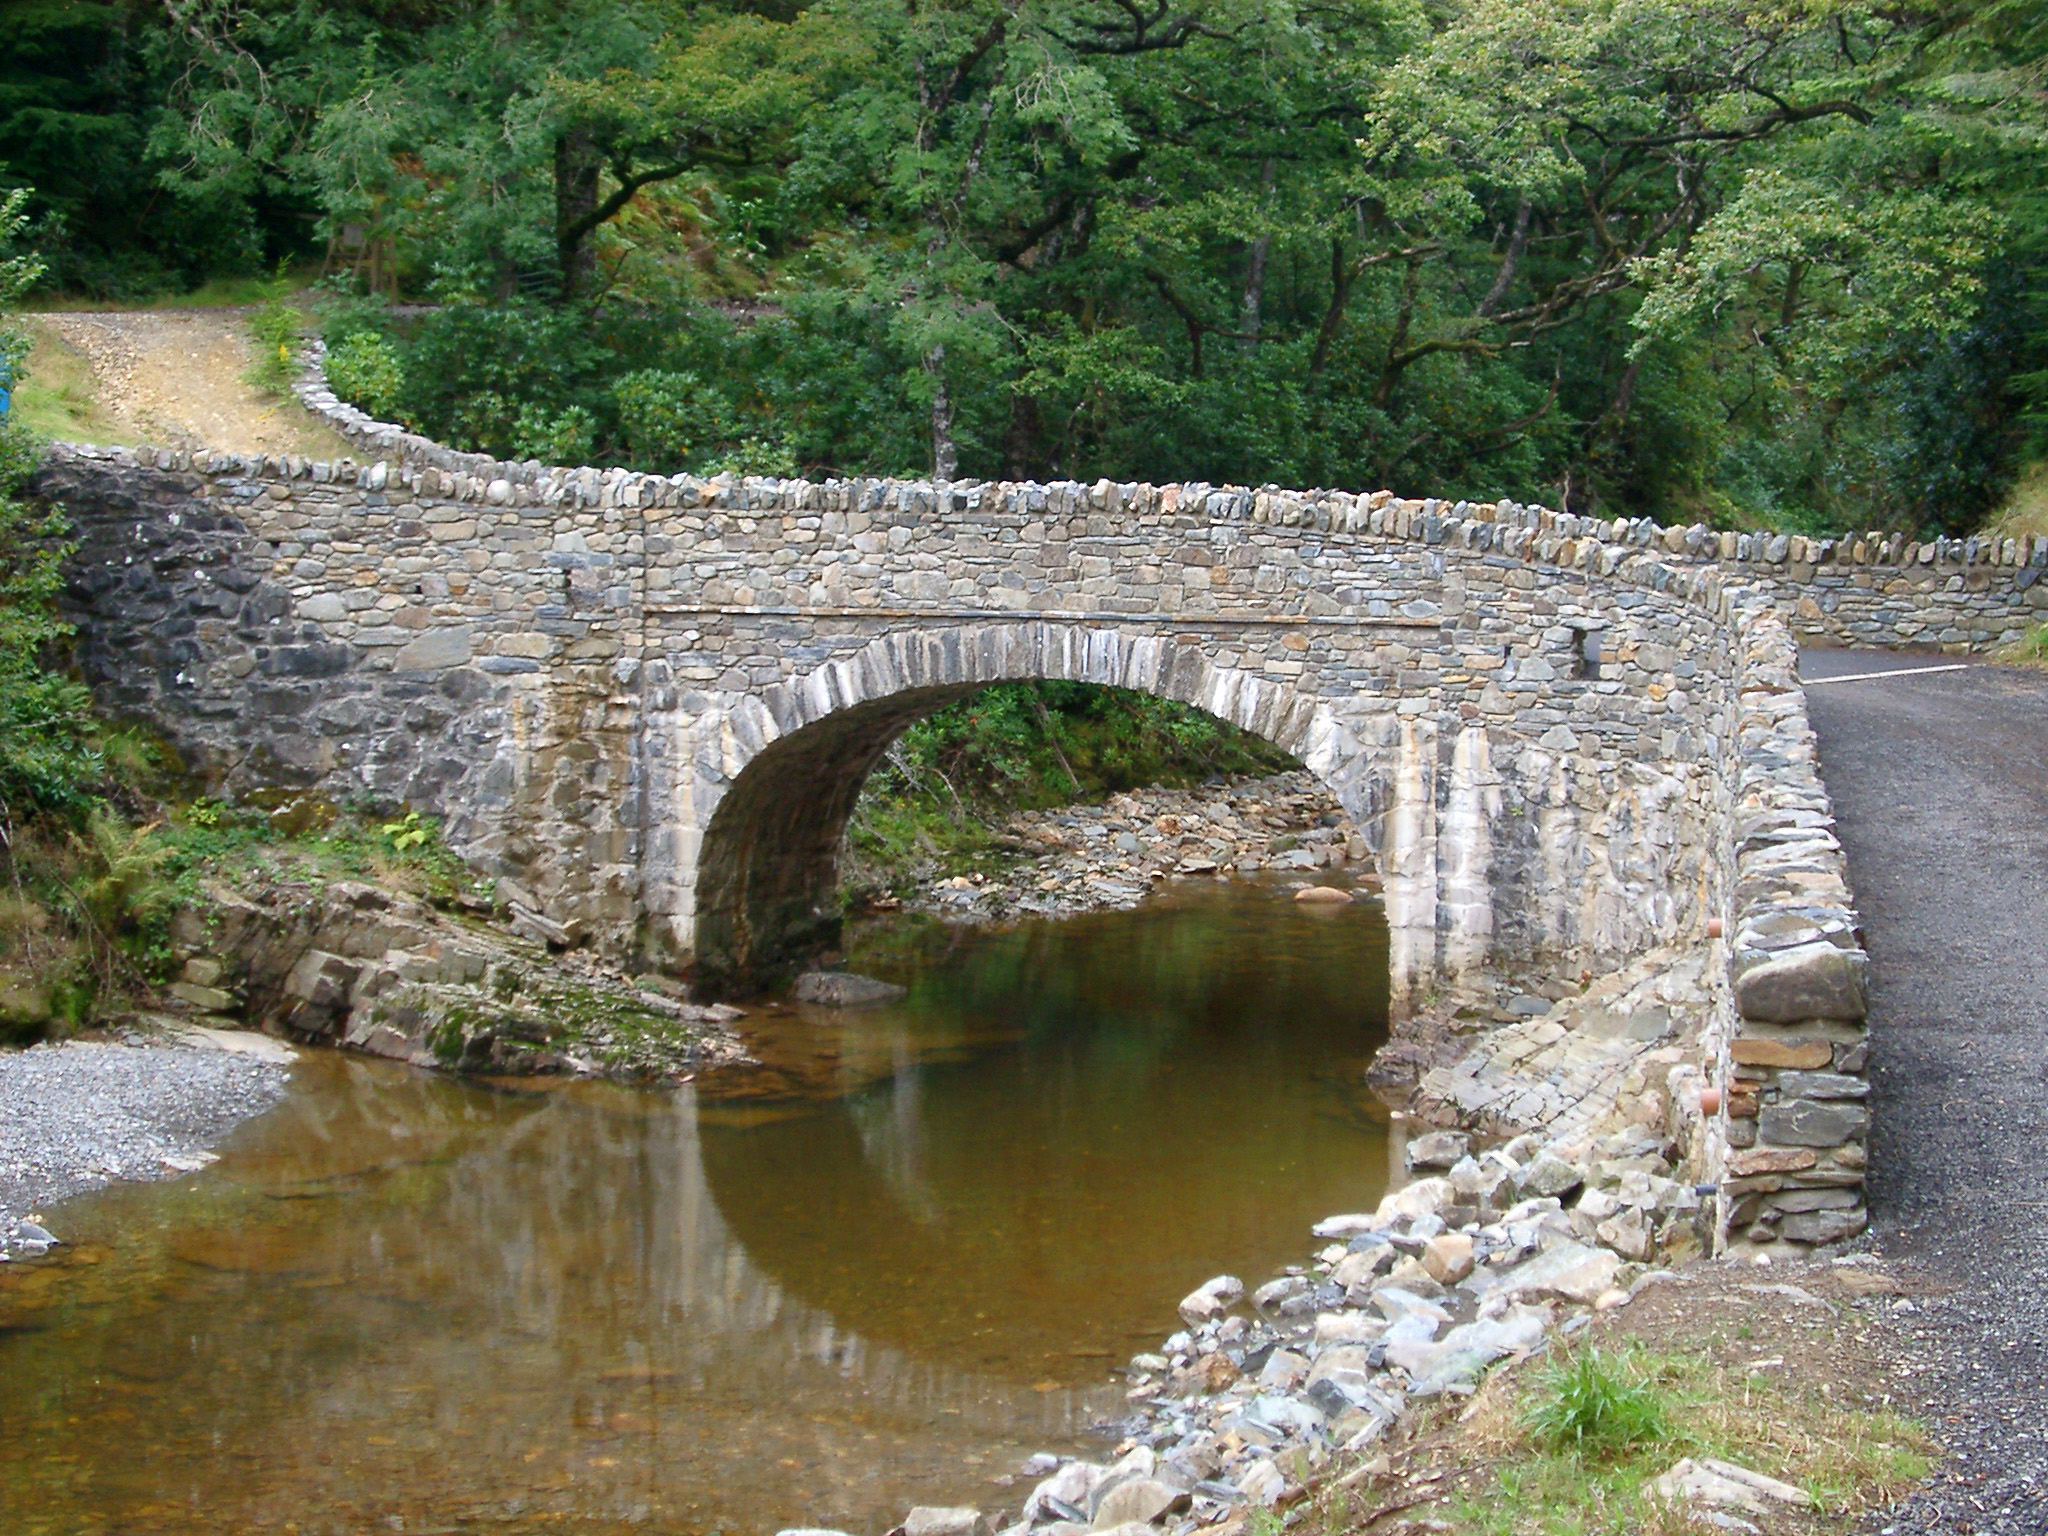 Narrow Stone Arch Bridge Crossing Over River Through Forest